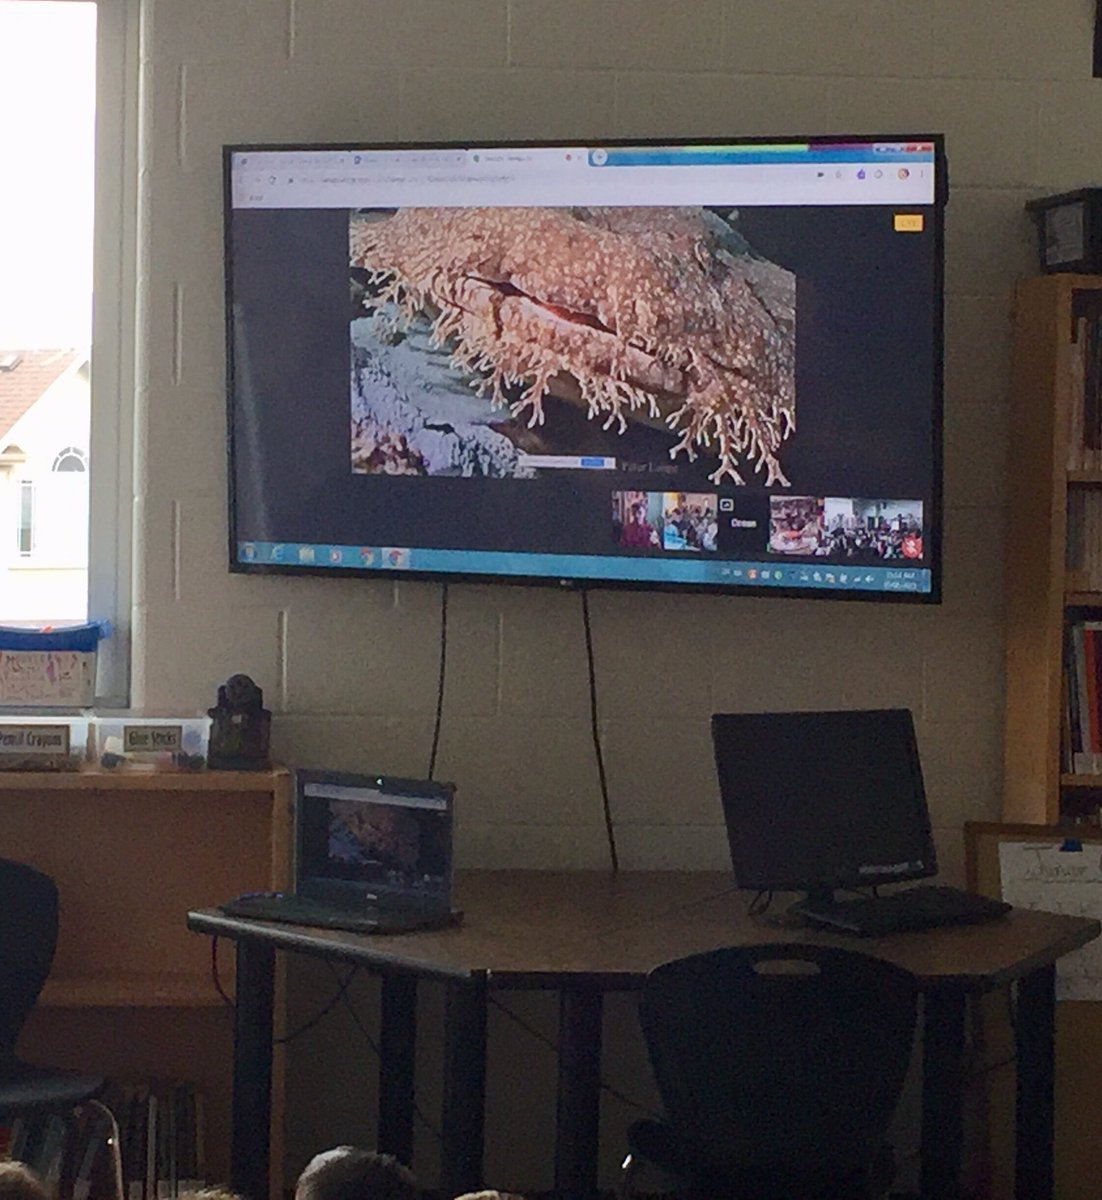 """Wobbegong Sharks are so cool!"" Thank you @OceanWise + @VanAqua for leading us in such a cool exploration of marine life camouflage! Our kindi + Gr. 4s (80+ of them!) are taking the challenge to observe camouflage in our backyards. @EBTSOYP #ExploringByTheSeat @wmwtrailblazers"